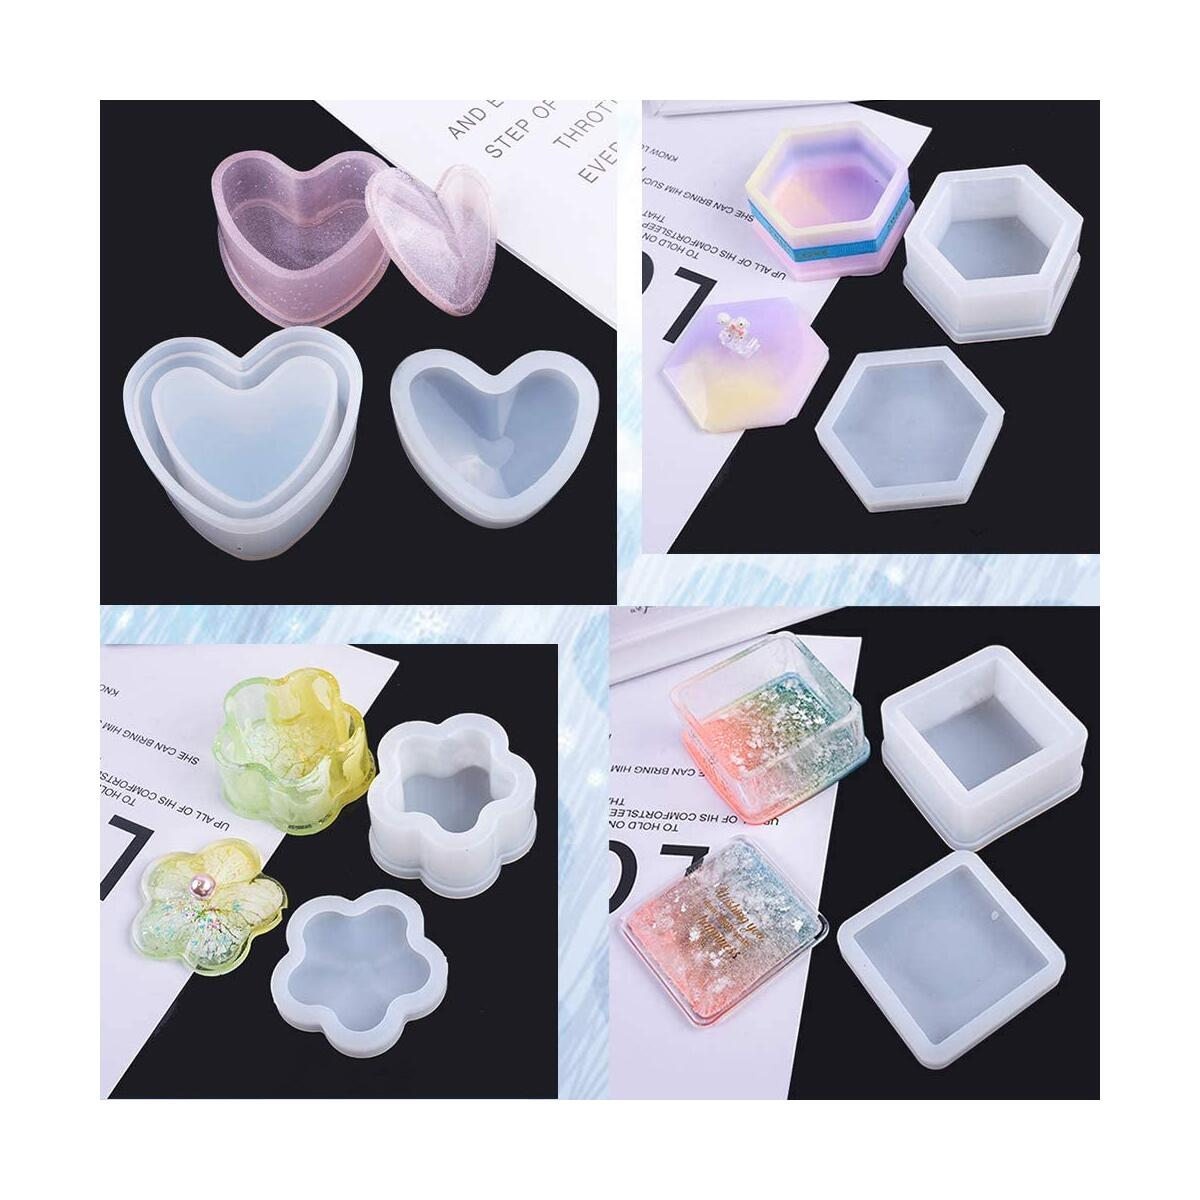 Box Resin Molds,4 Pcs Jewelry Box Molds with Heart Shape Silicone Resin Mold,Flower Resin Molds, Hexagon Storage Box Mold and Square Epoxy Molds for Resin Crafts DIY